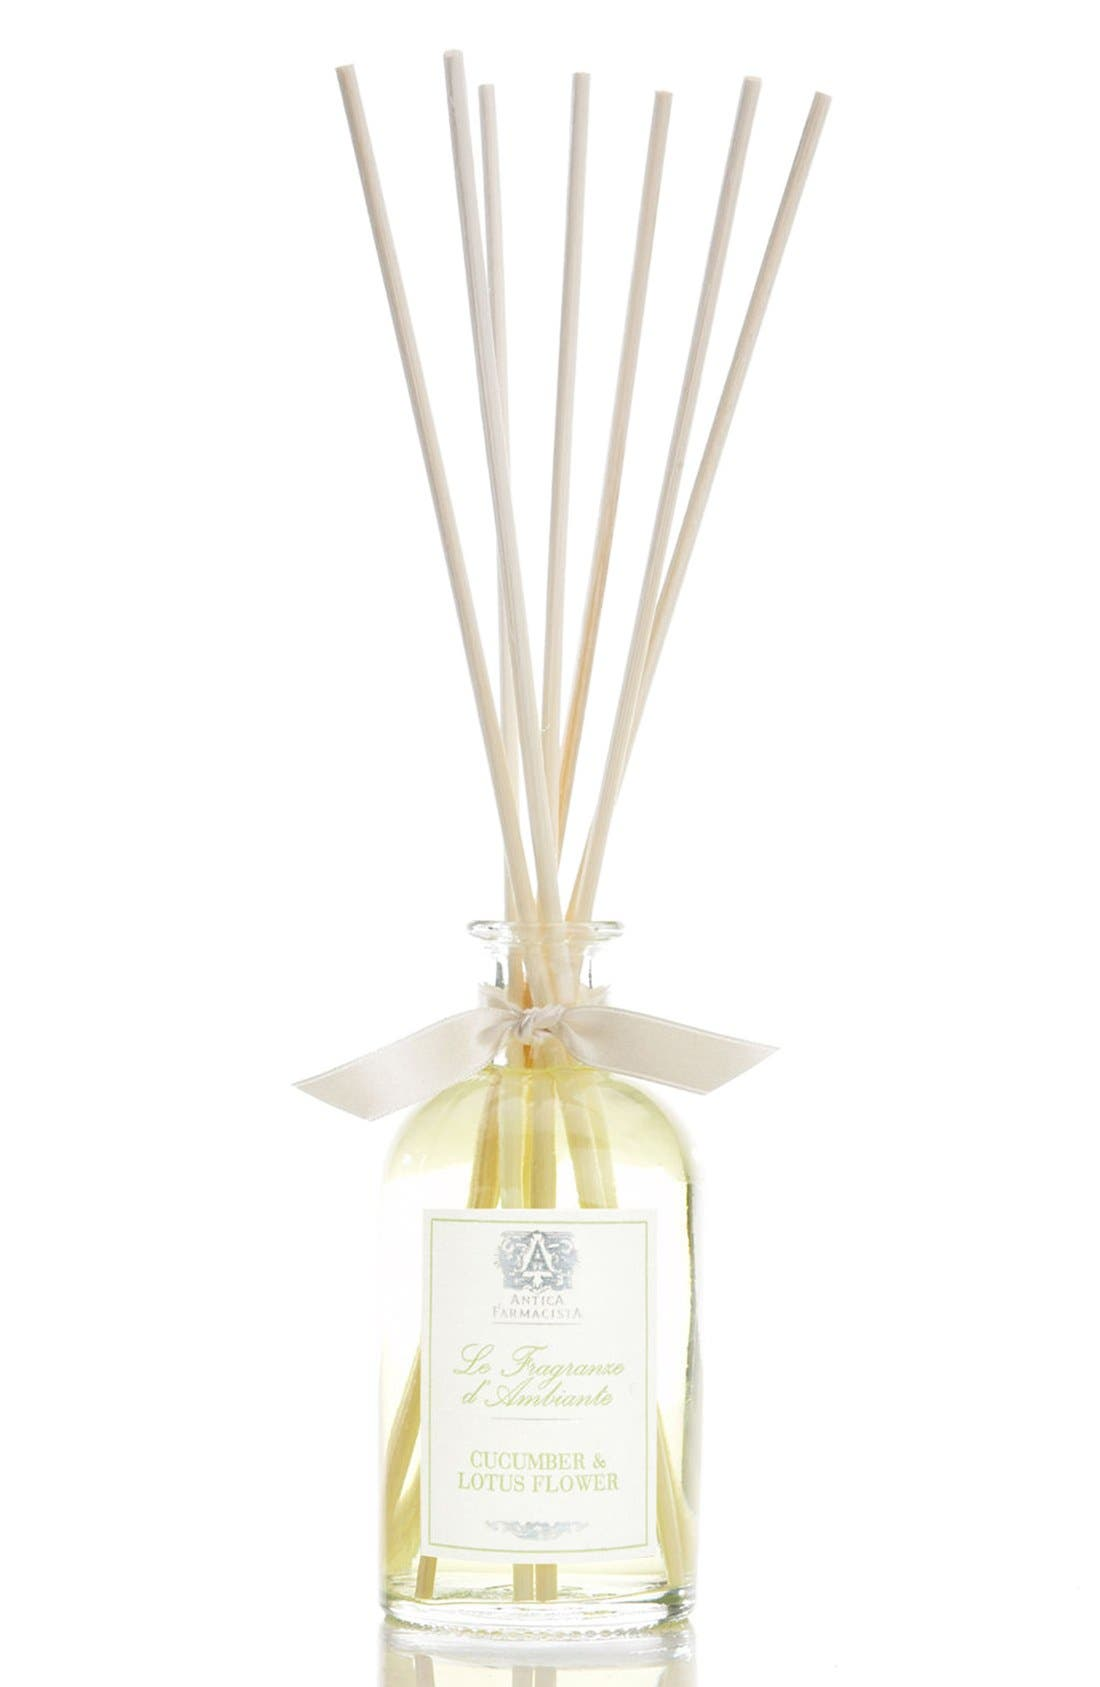 Alternate Image 1 Selected - Antica Farmacista Cucumber & Lotus Flower Home Ambiance Perfume (3.3 oz.)